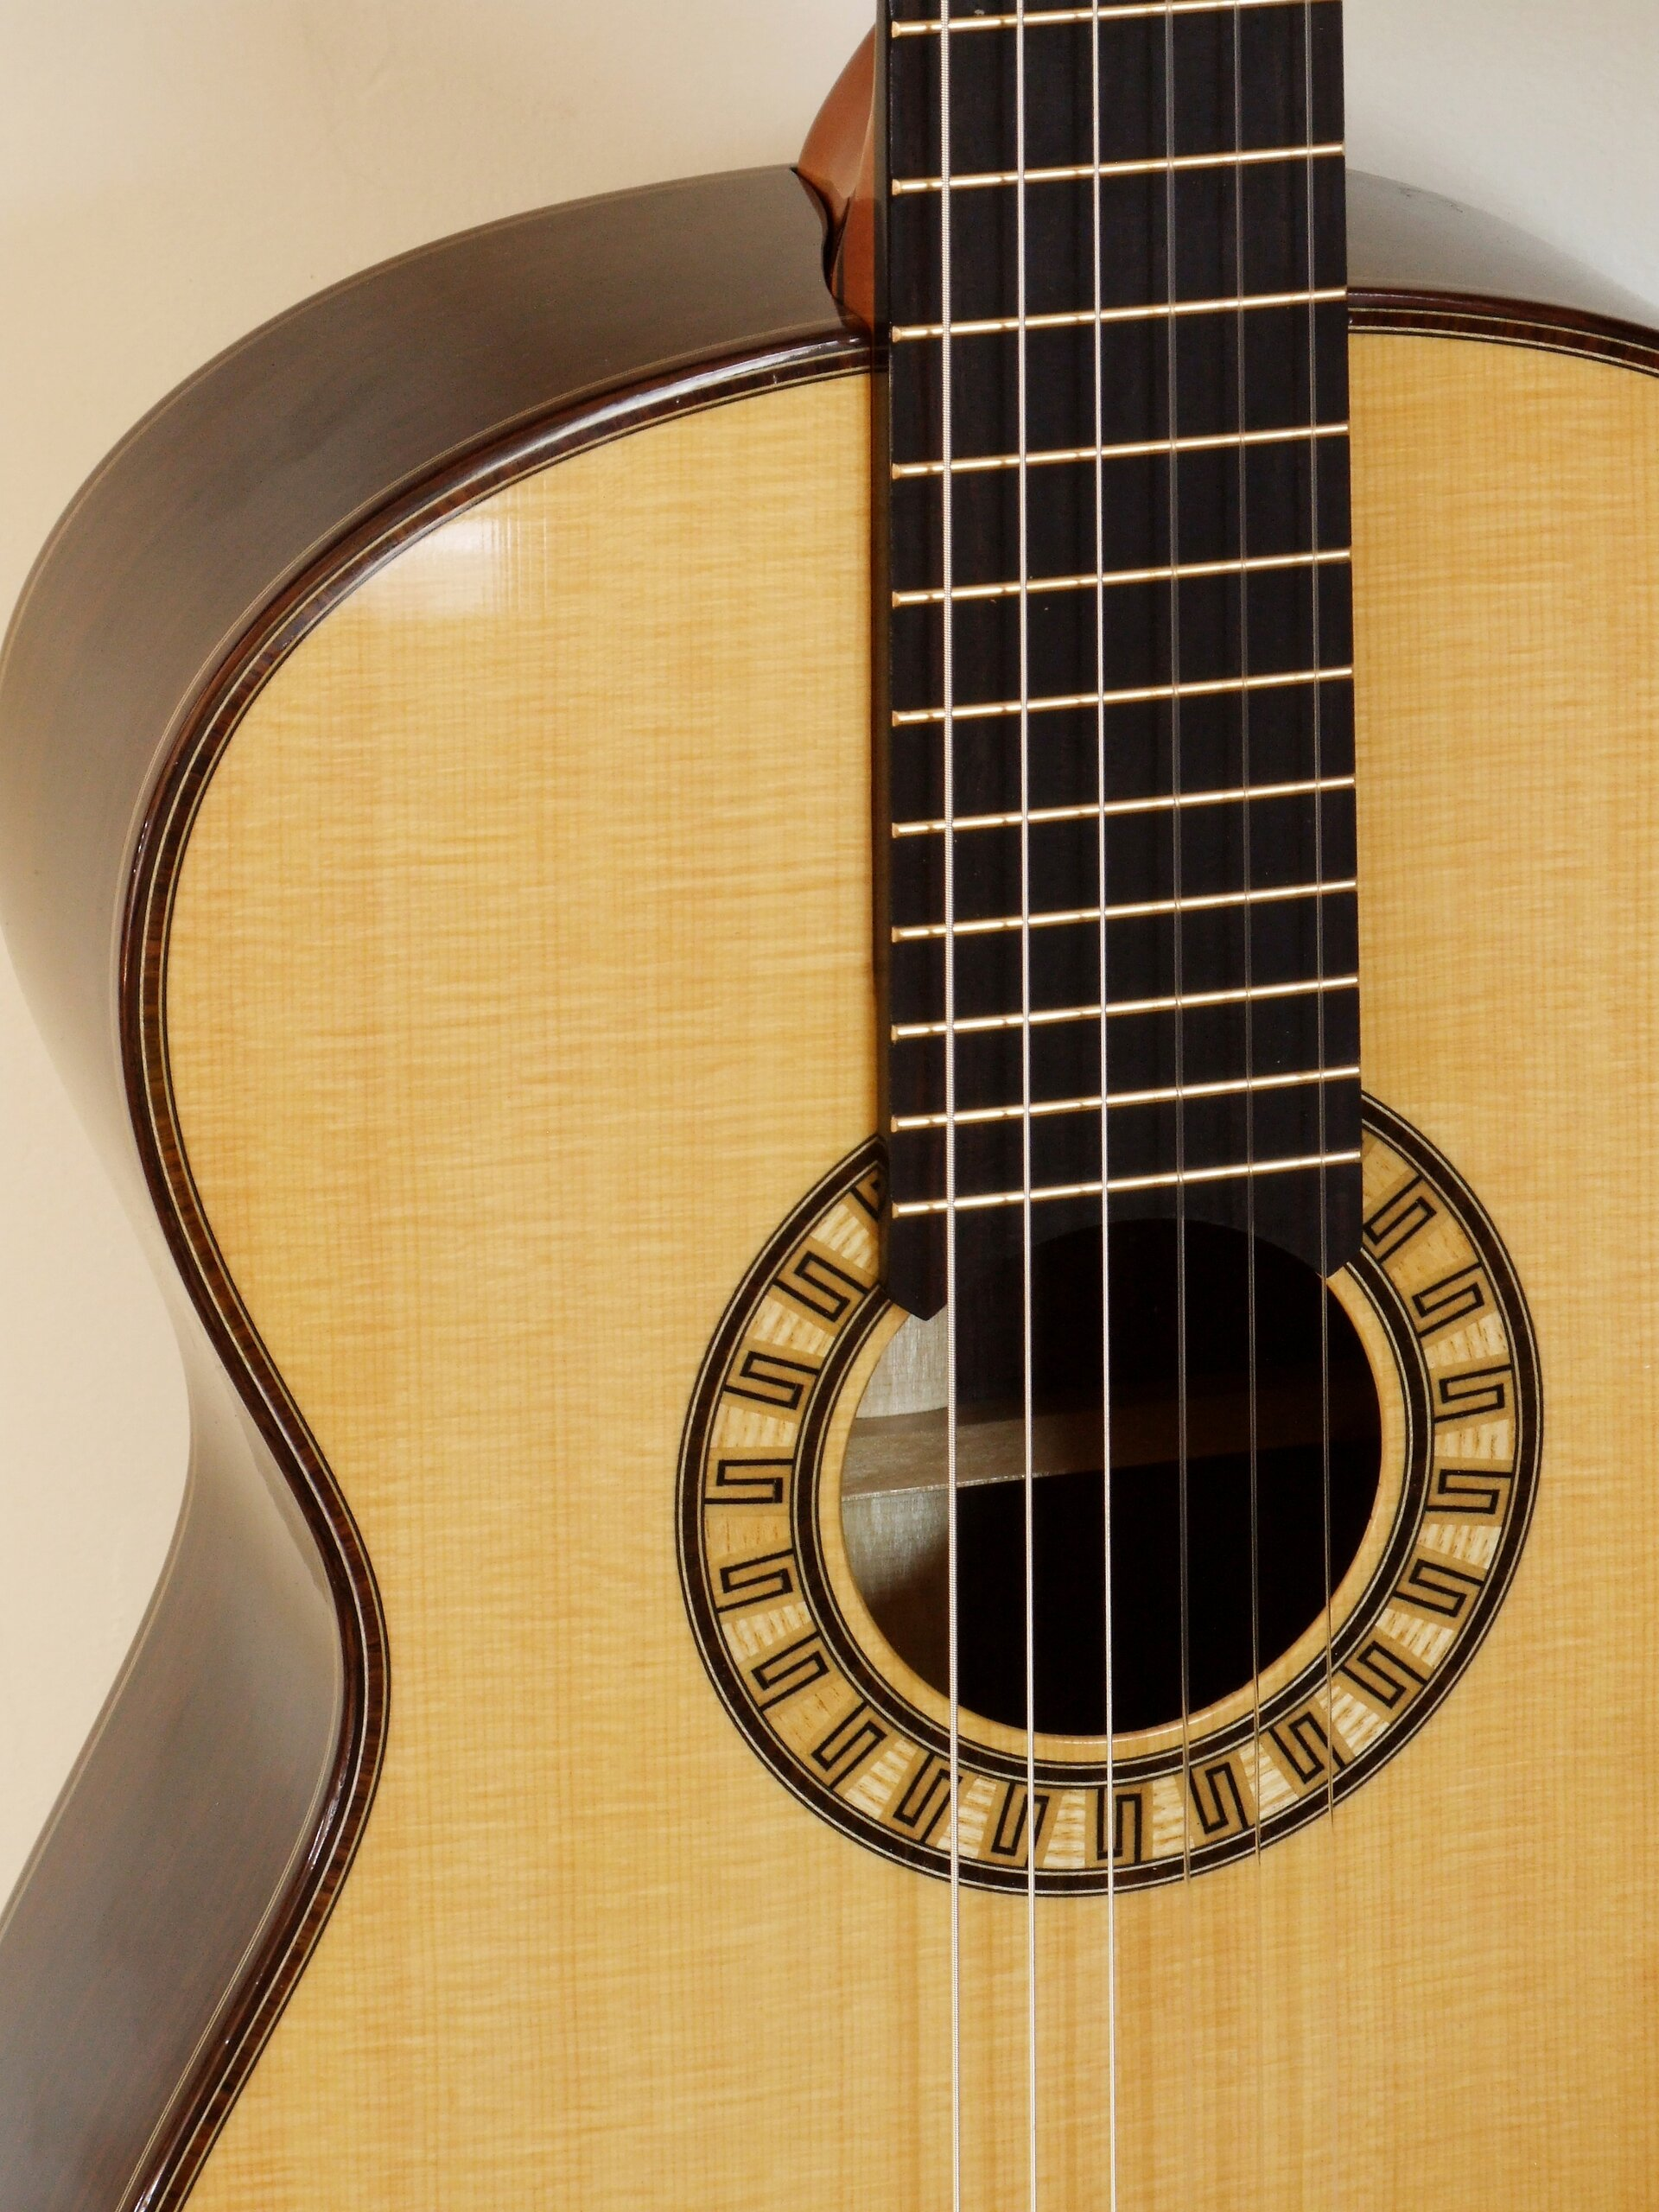 Small body classical guitar with bold meander rosette